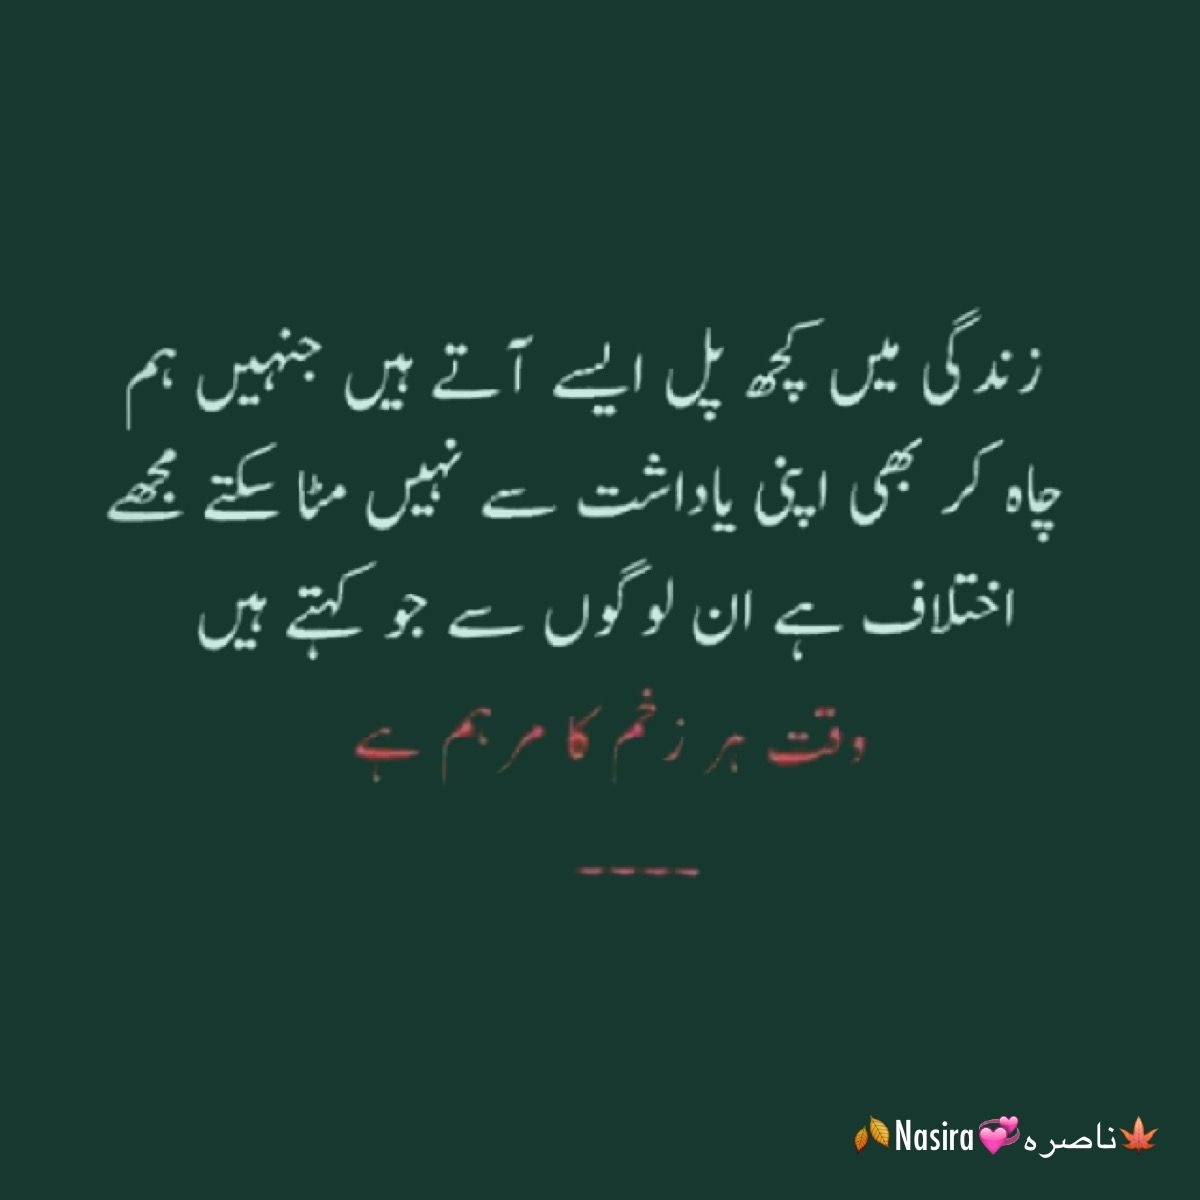 Very Short Funny Quotes About Life Urdu: Pin By Nasira Ahmad On Awesome Urdu Quotes & Poetry